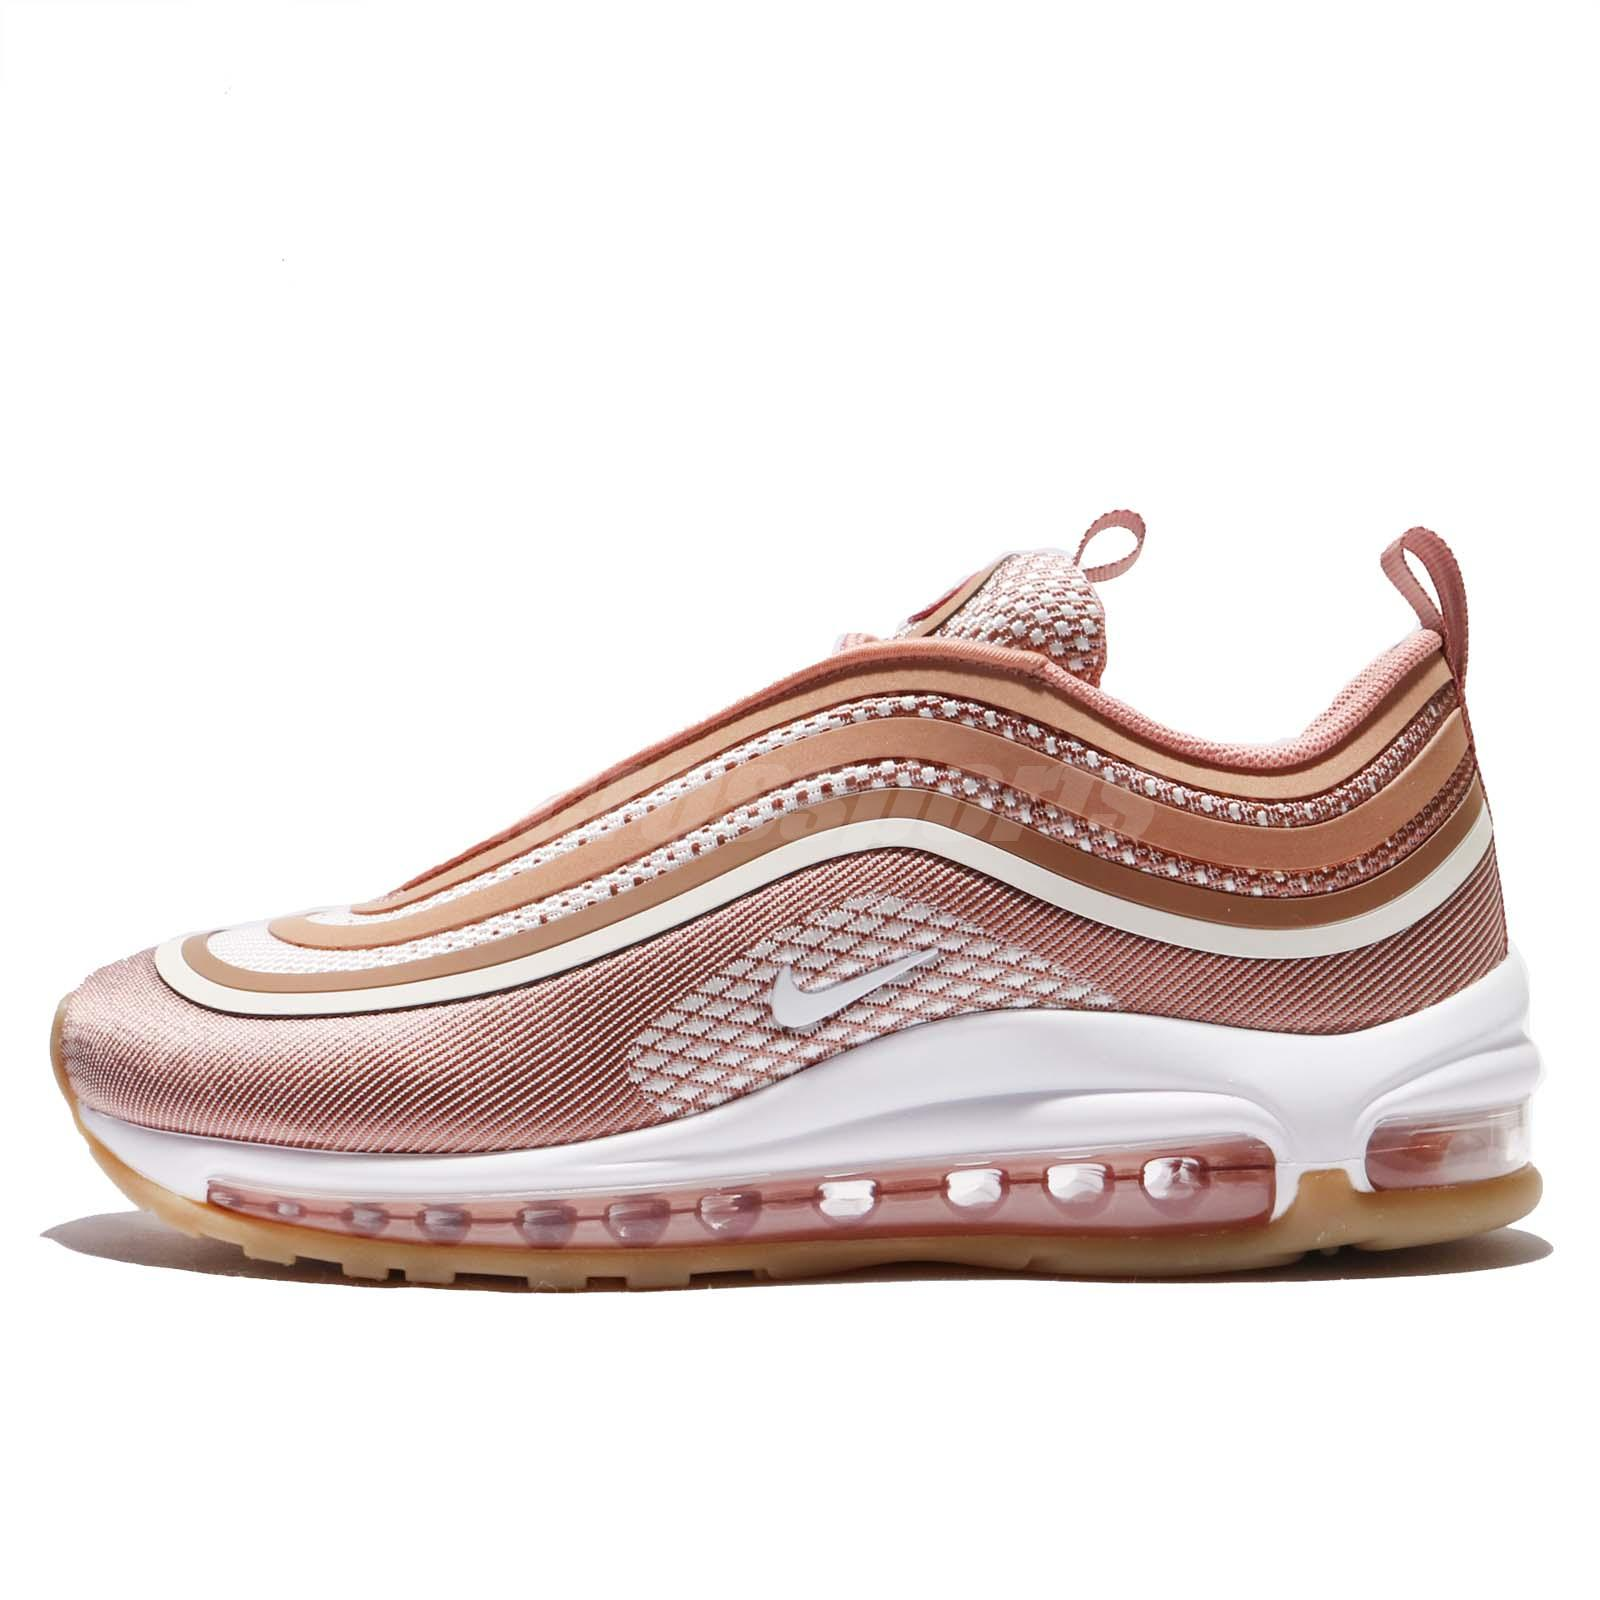 Wmns Nike Air Max 97 UL 17 Ultra Metallic Rose Gold Gum Women Shoes  917704-600